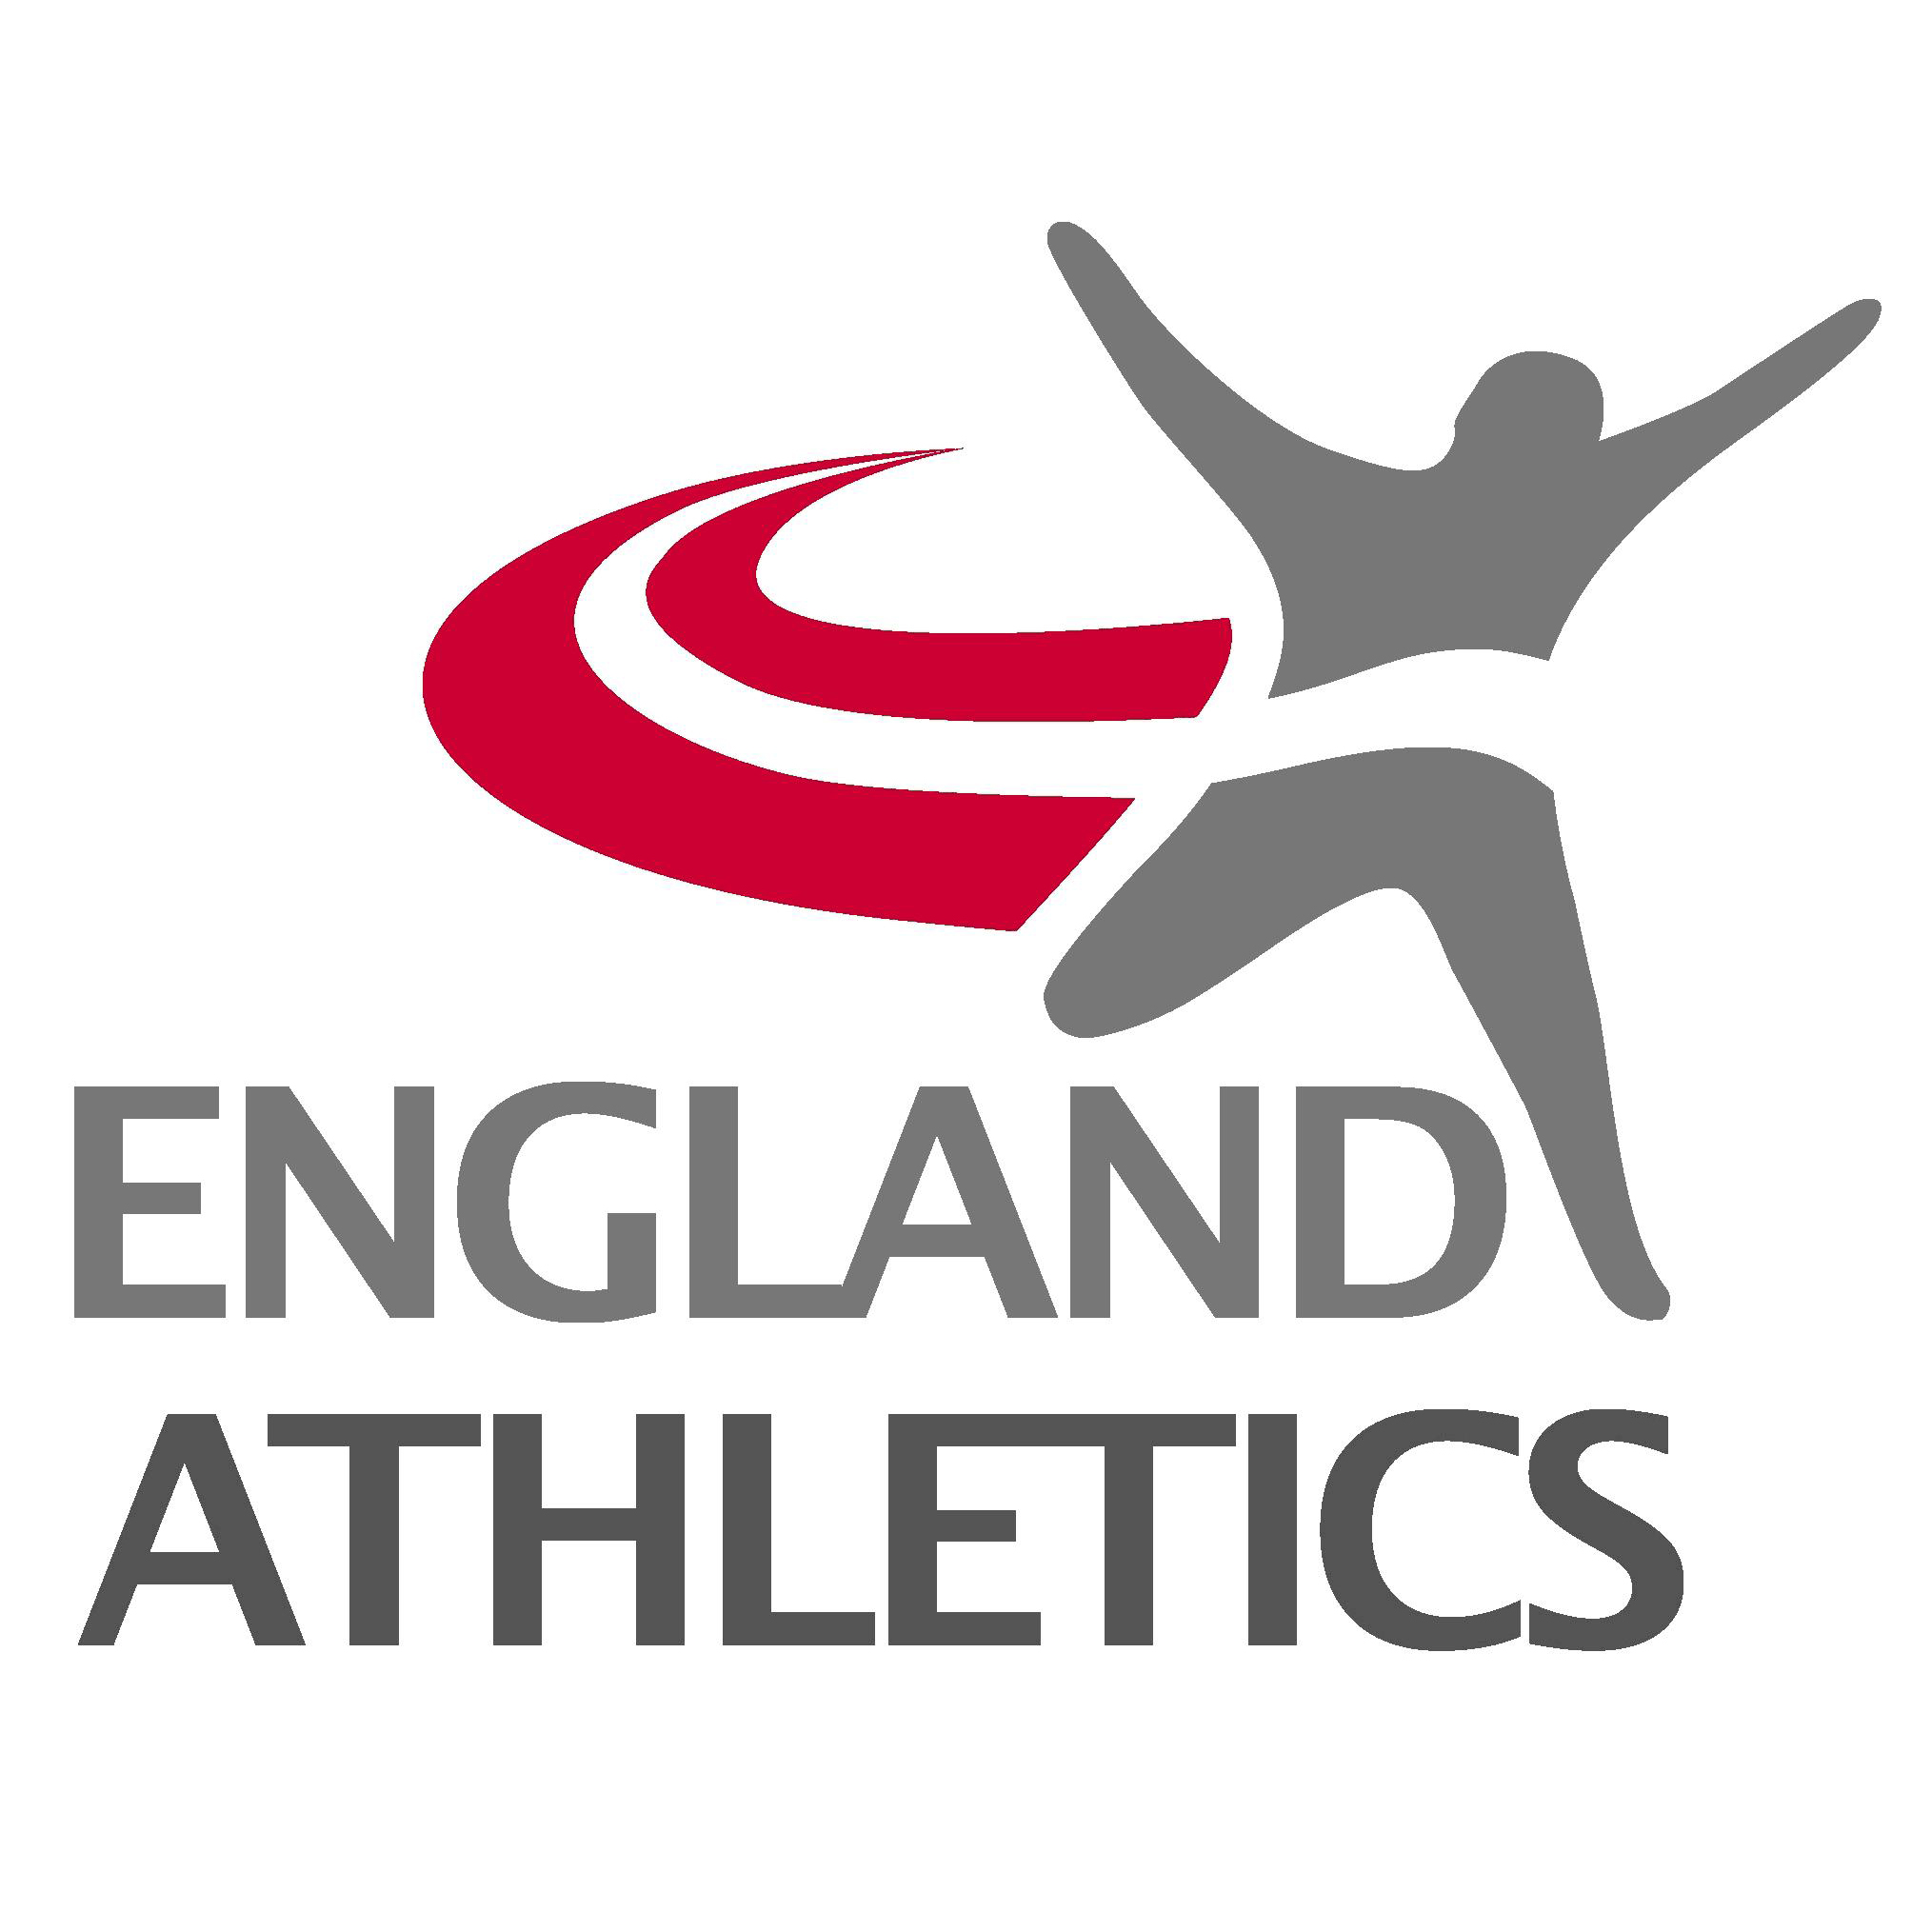 England athletics logo square